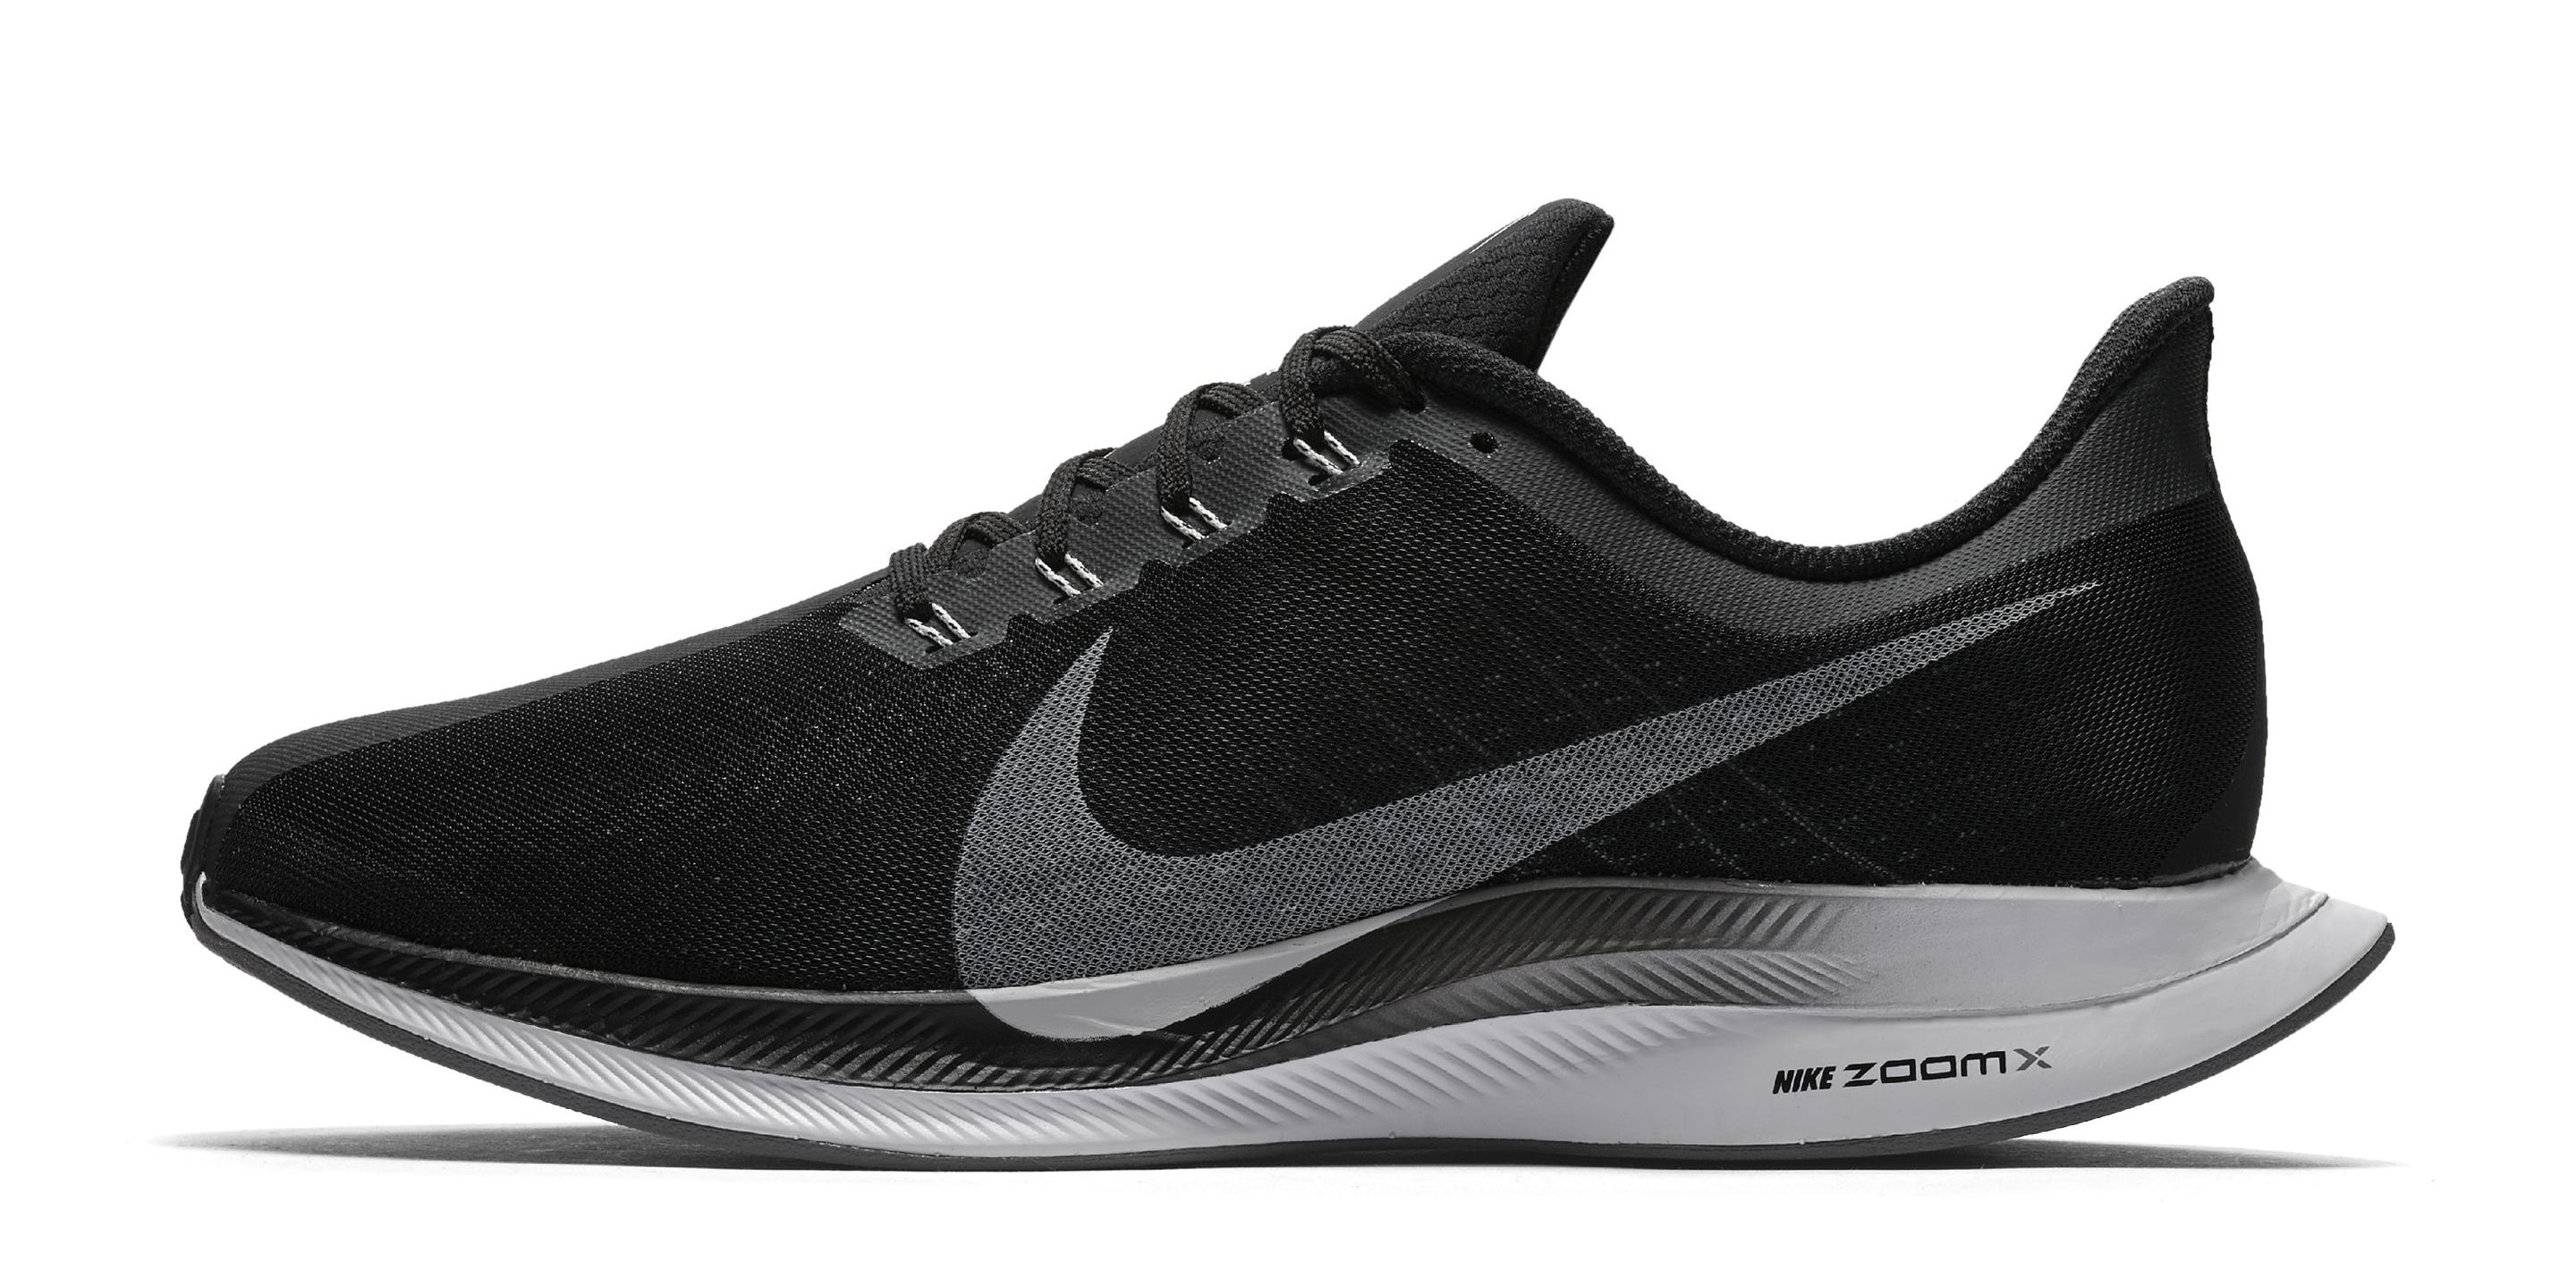 hot sale online f4129 51fa8 Best Nike Running Shoes   Nike Shoe Reviews 2019